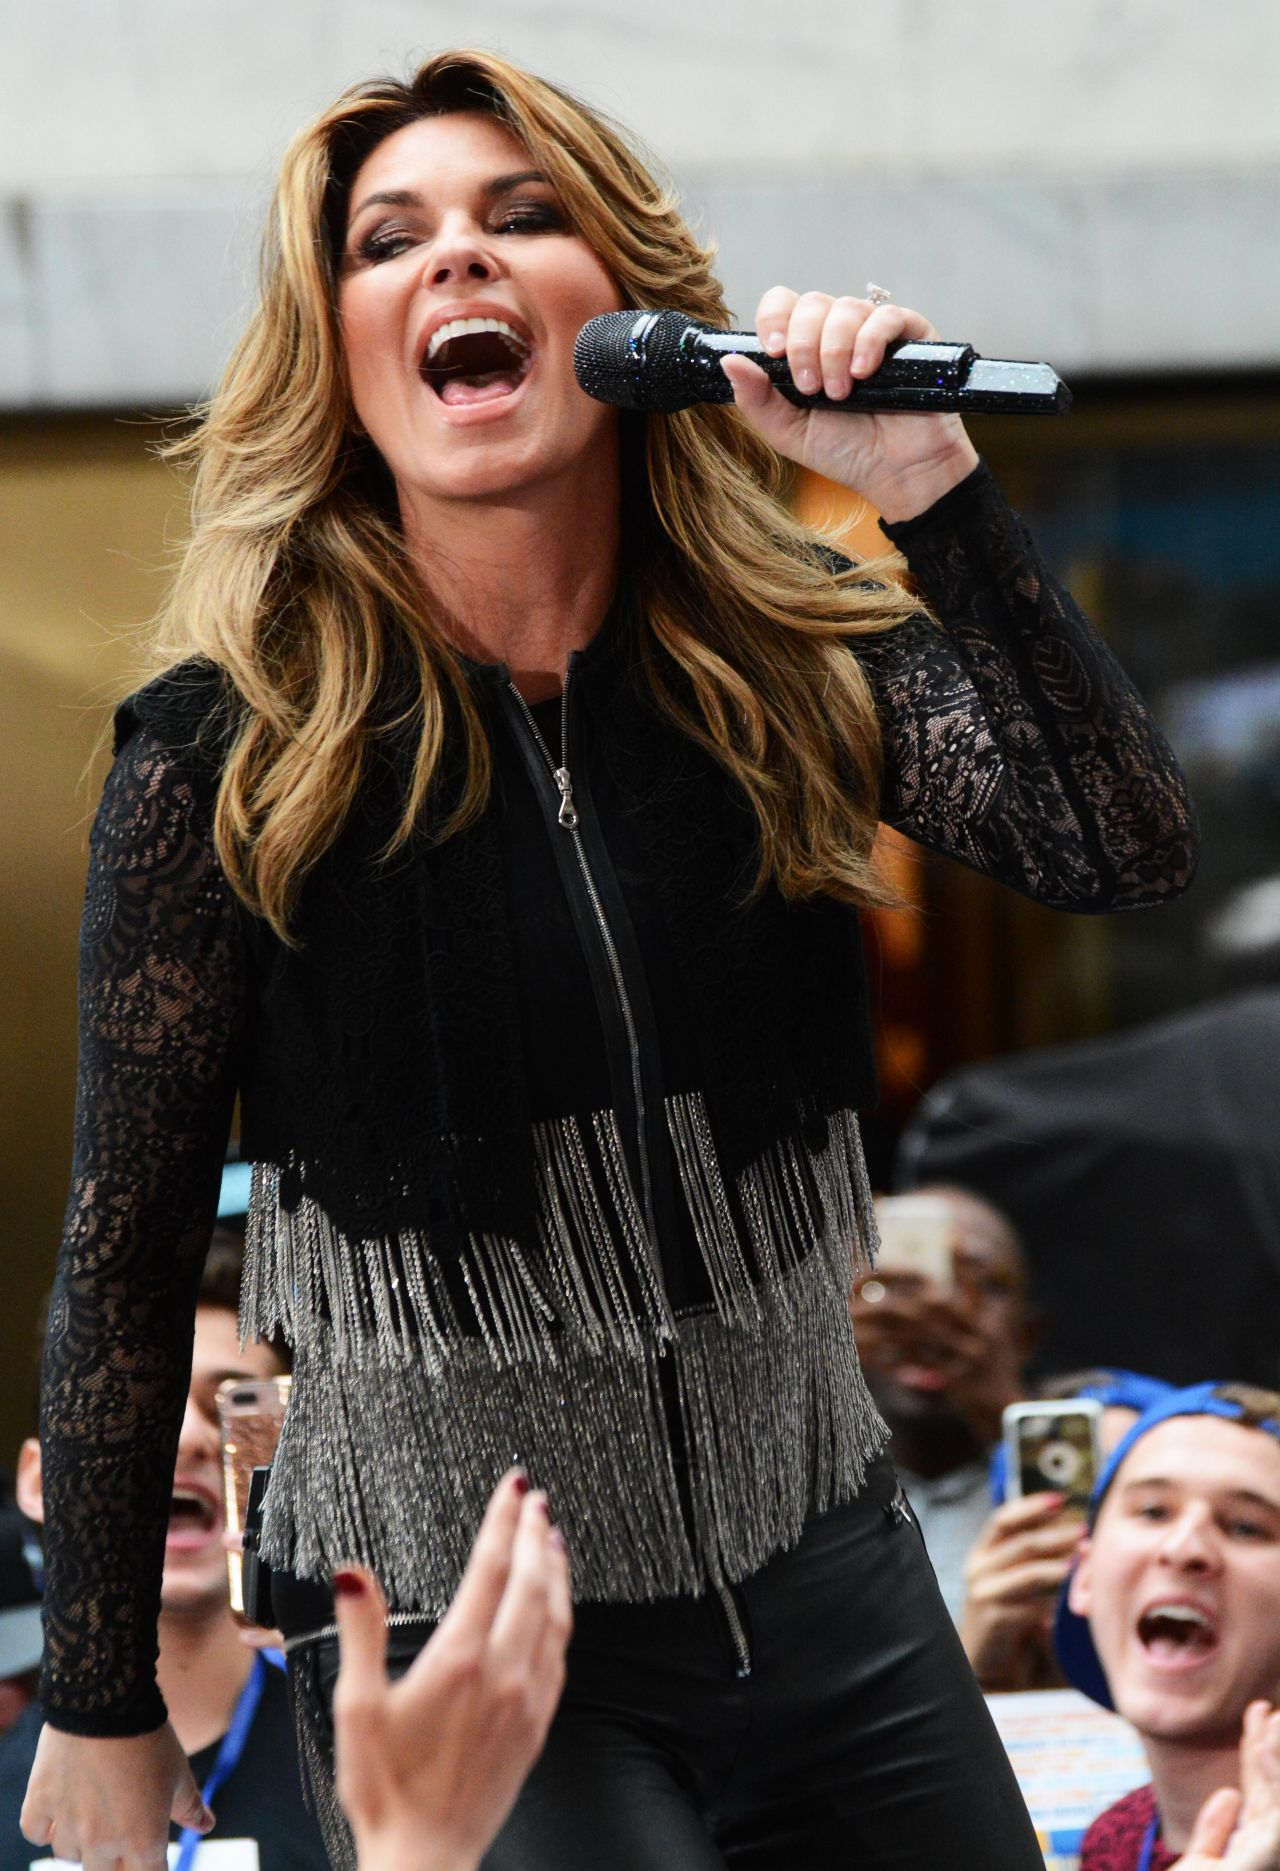 Shania Twain Performs At The Today Show Concert Series